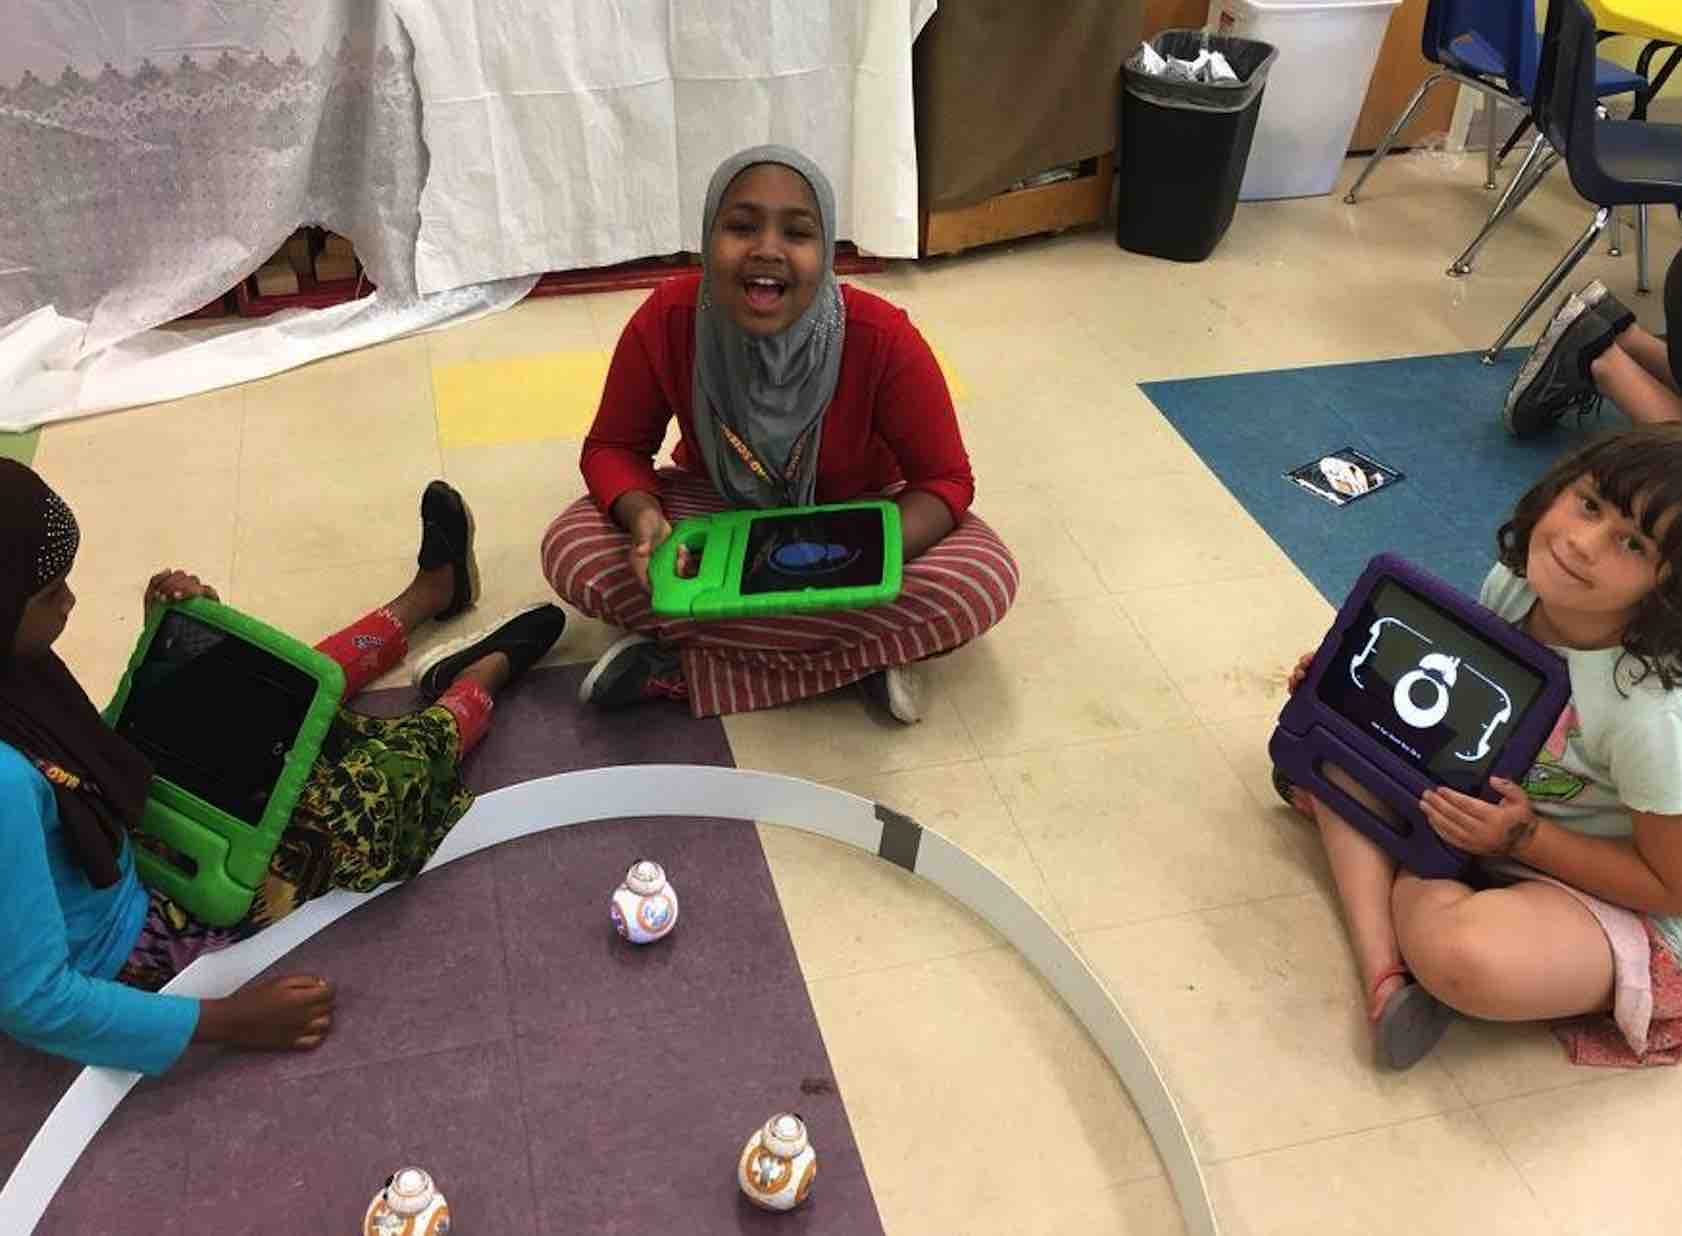 Robotics Camps In Maine Blocks And Augmentedreality App Teaches Kids Circuitry Basics Handson Straight Up Just Have Fun With This Dynamic Robot